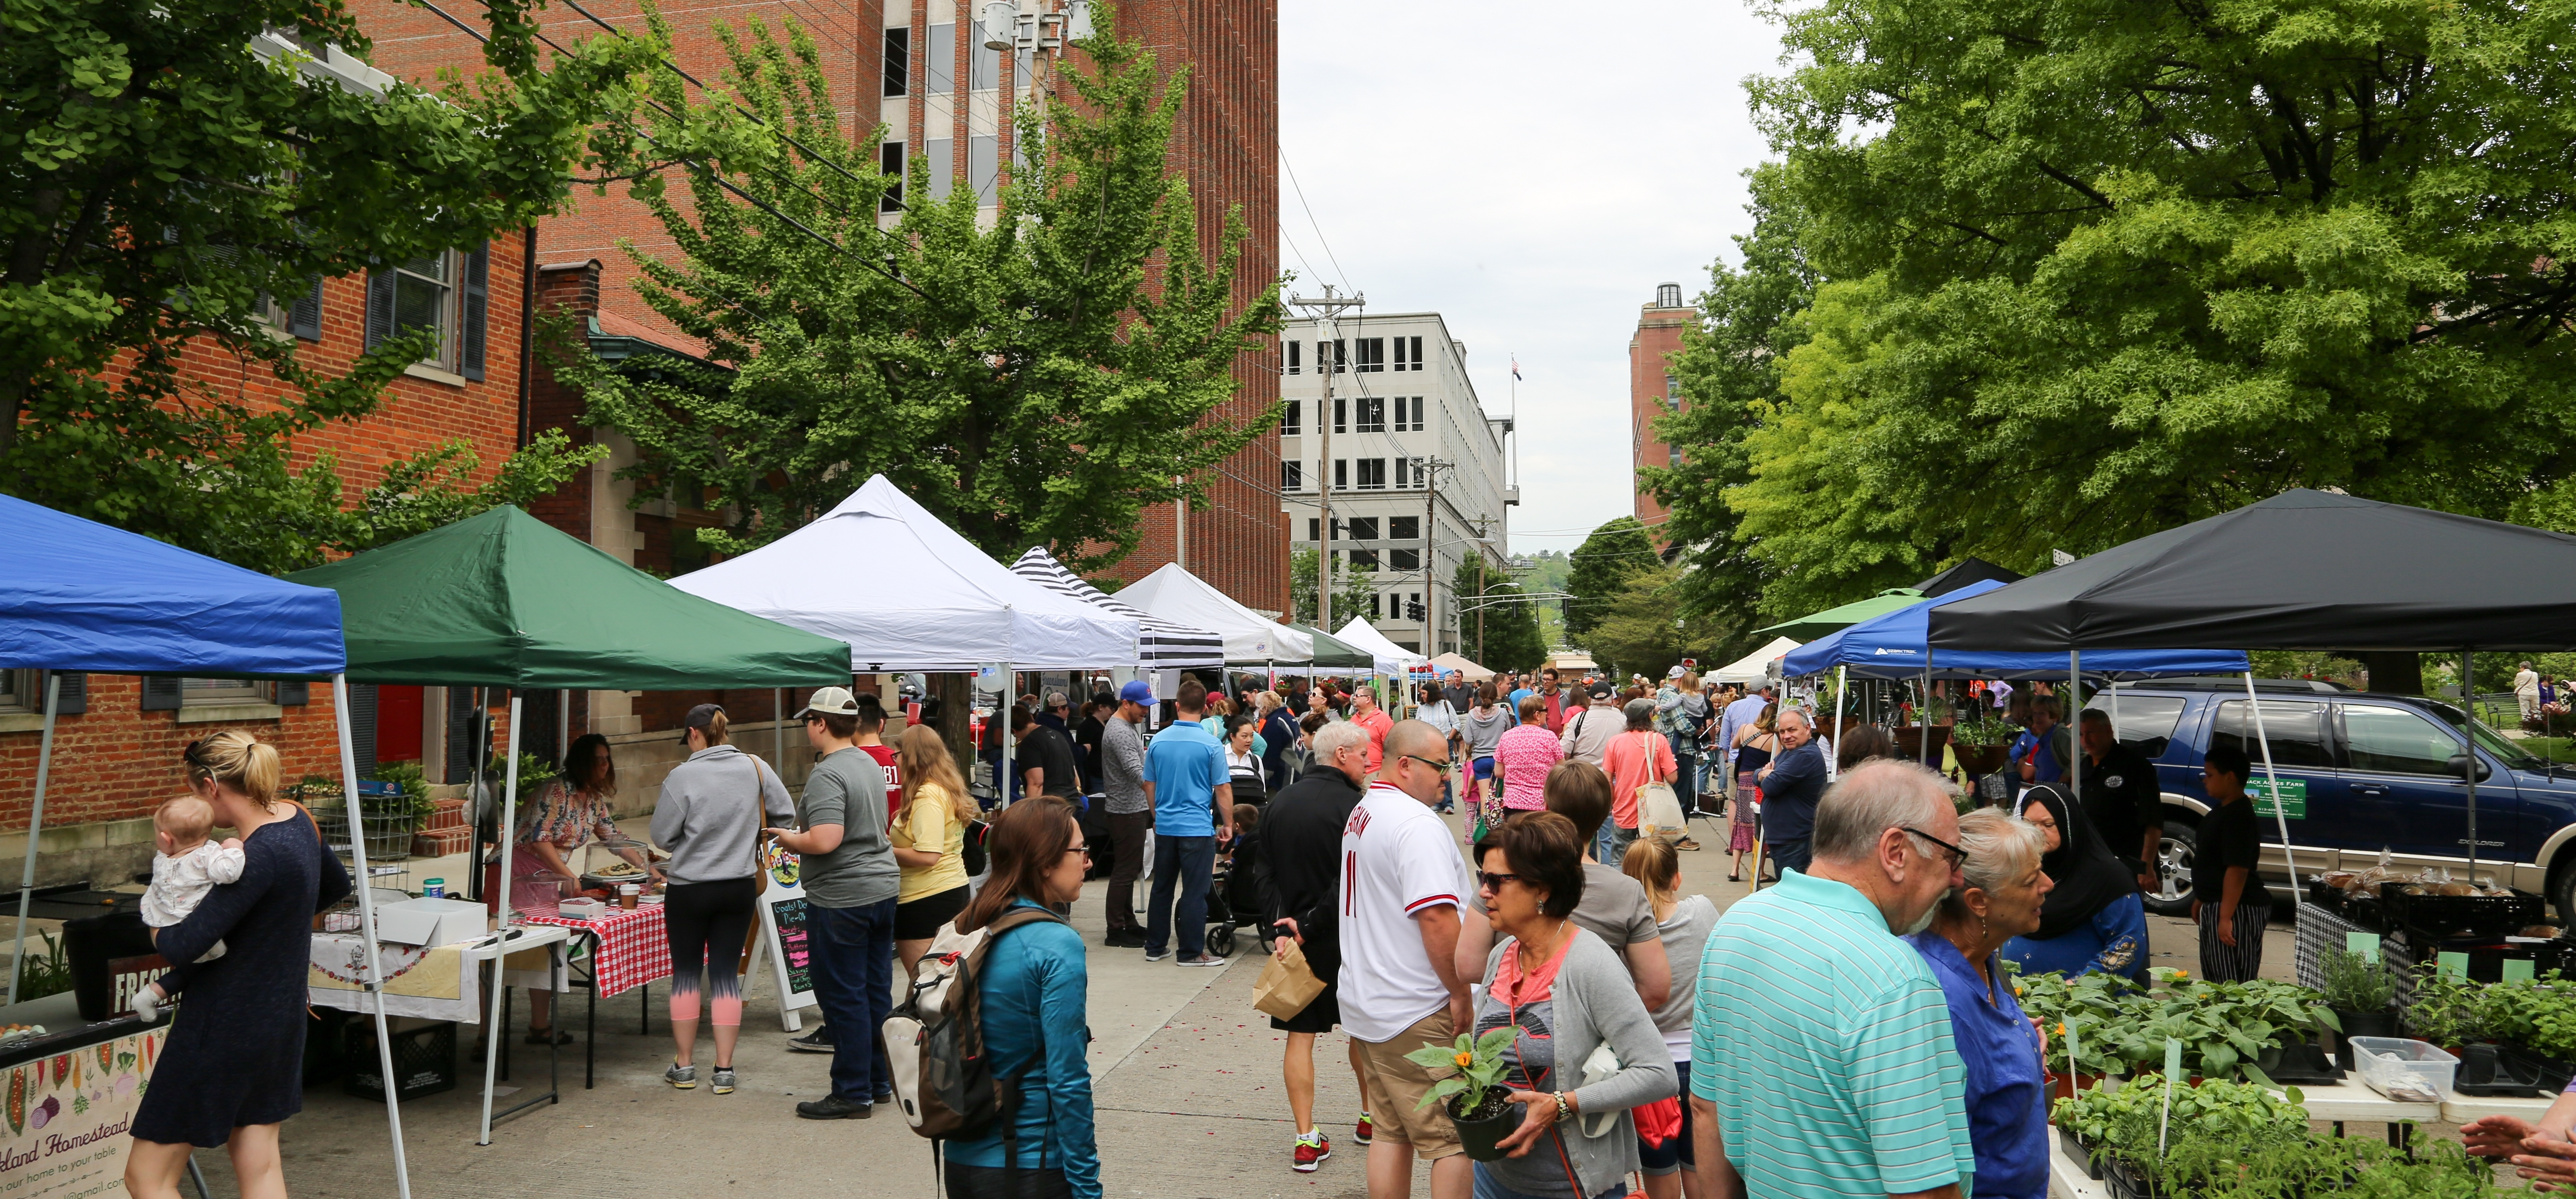 Covington Farmers Market-894710-edited.jpg